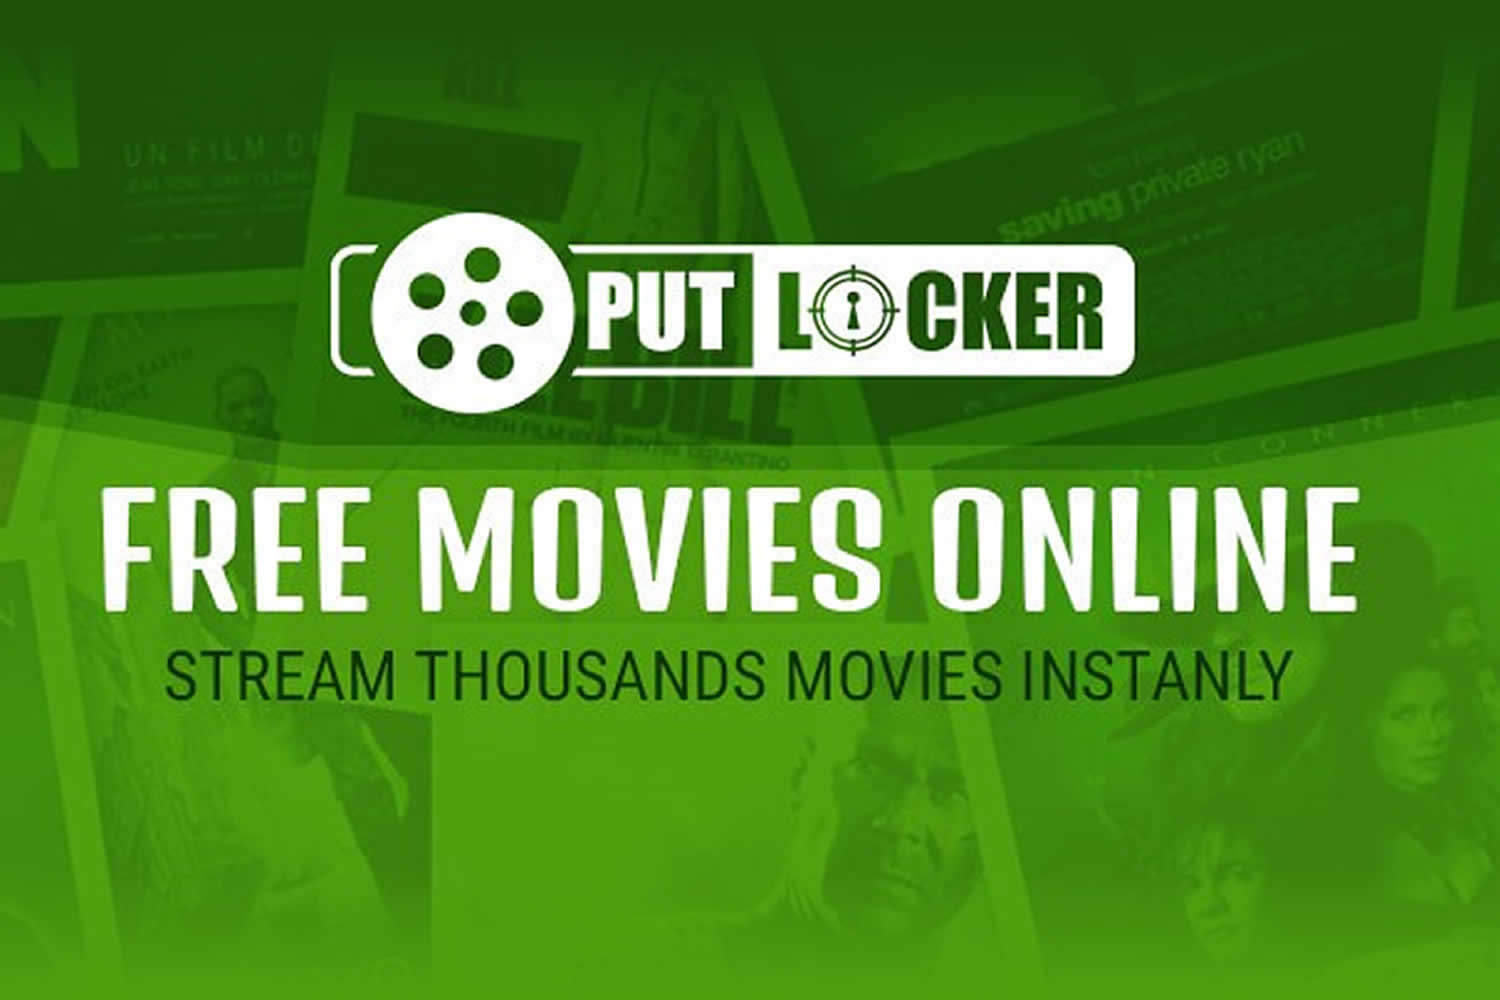 Watch Code Between Brothers 2 Putlocker Movies